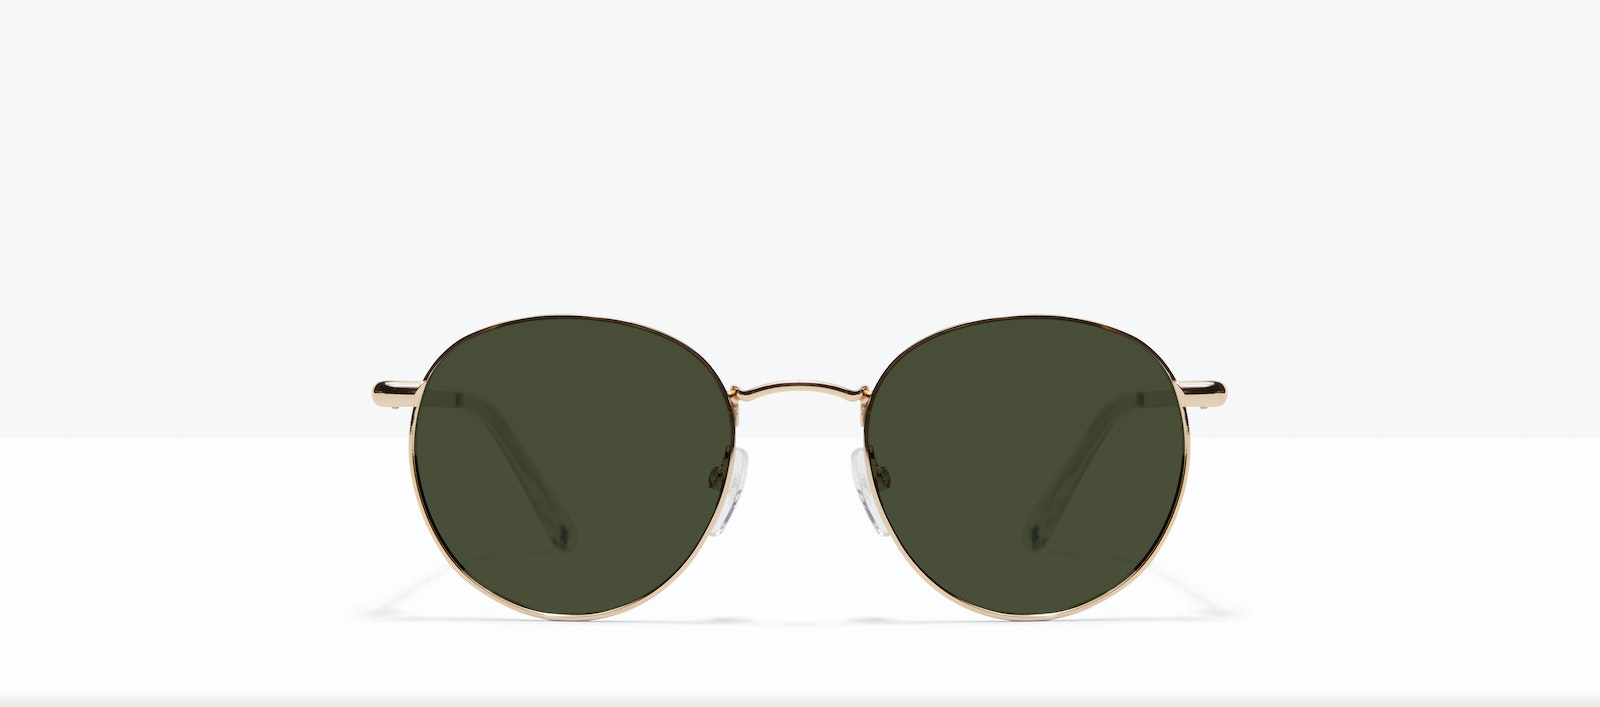 Affordable Fashion Glasses Round Sunglasses Men Women Dynasty M Gold Front